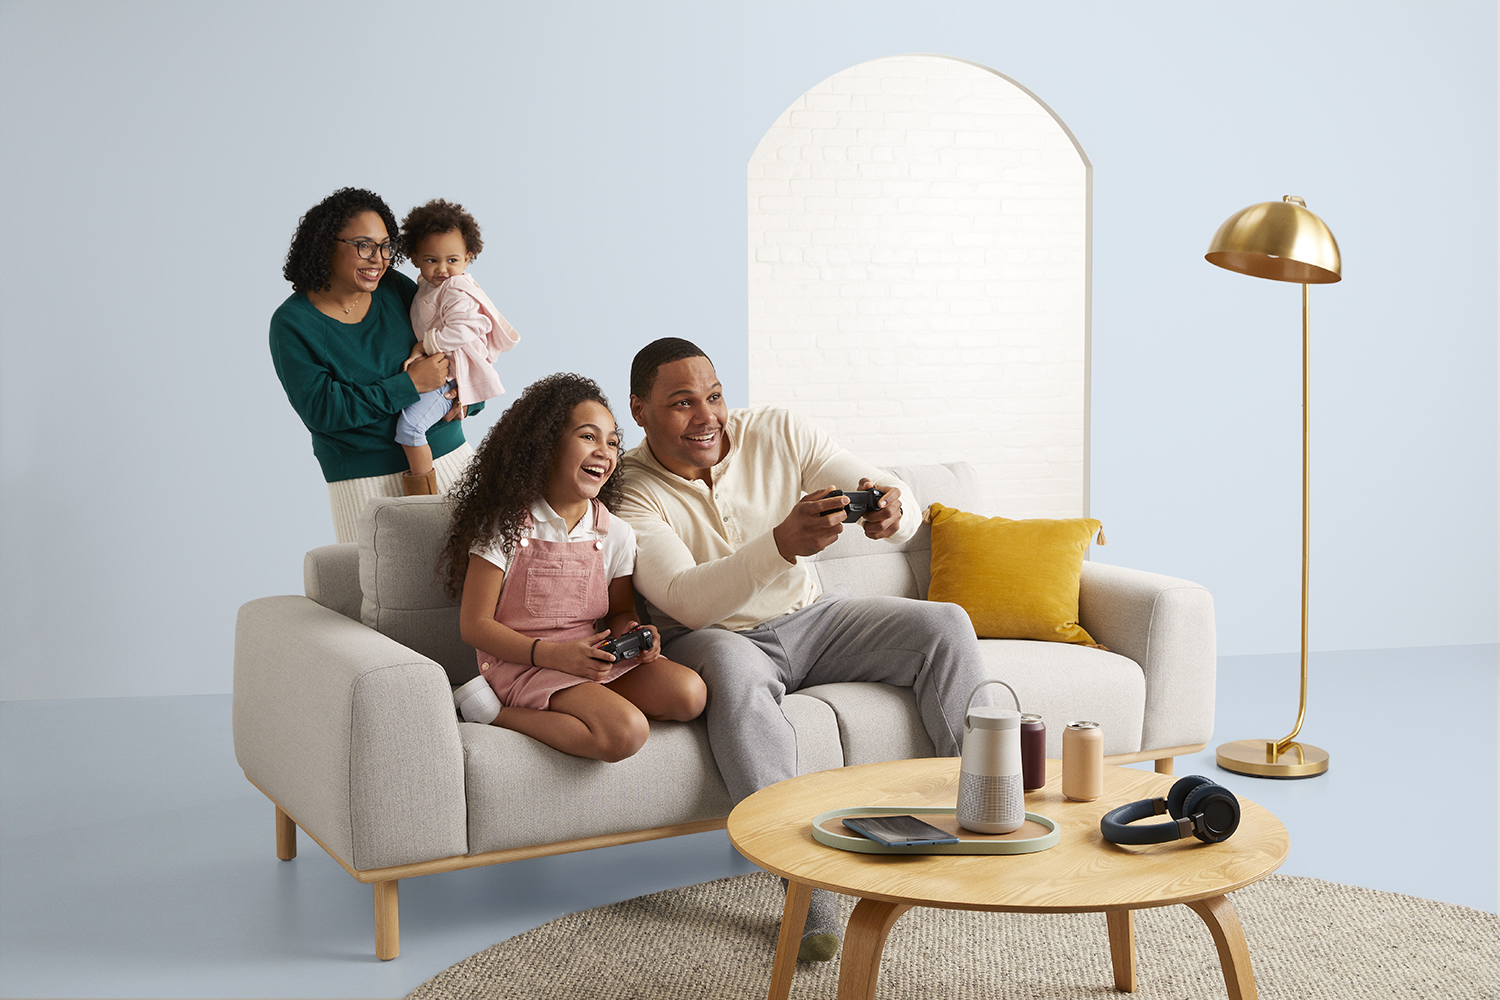 Instacart_Living_Room_Electronics_Play_Gaming_Wide_Family_9474_Blue